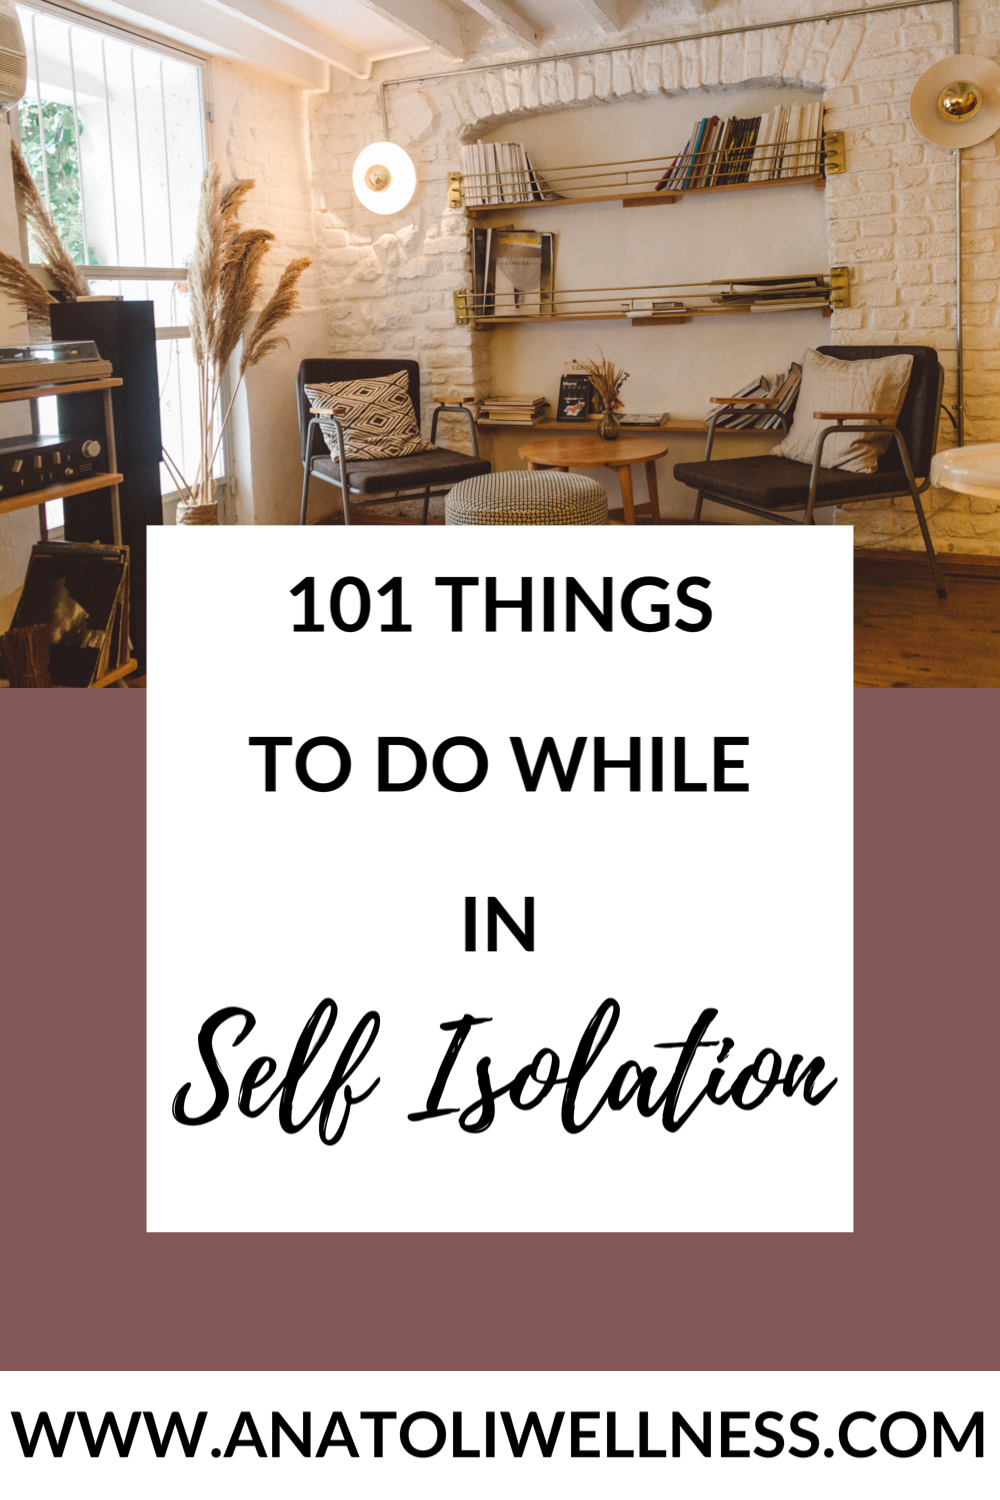 101 Things To Do While In Self Isolation in 2020 Things